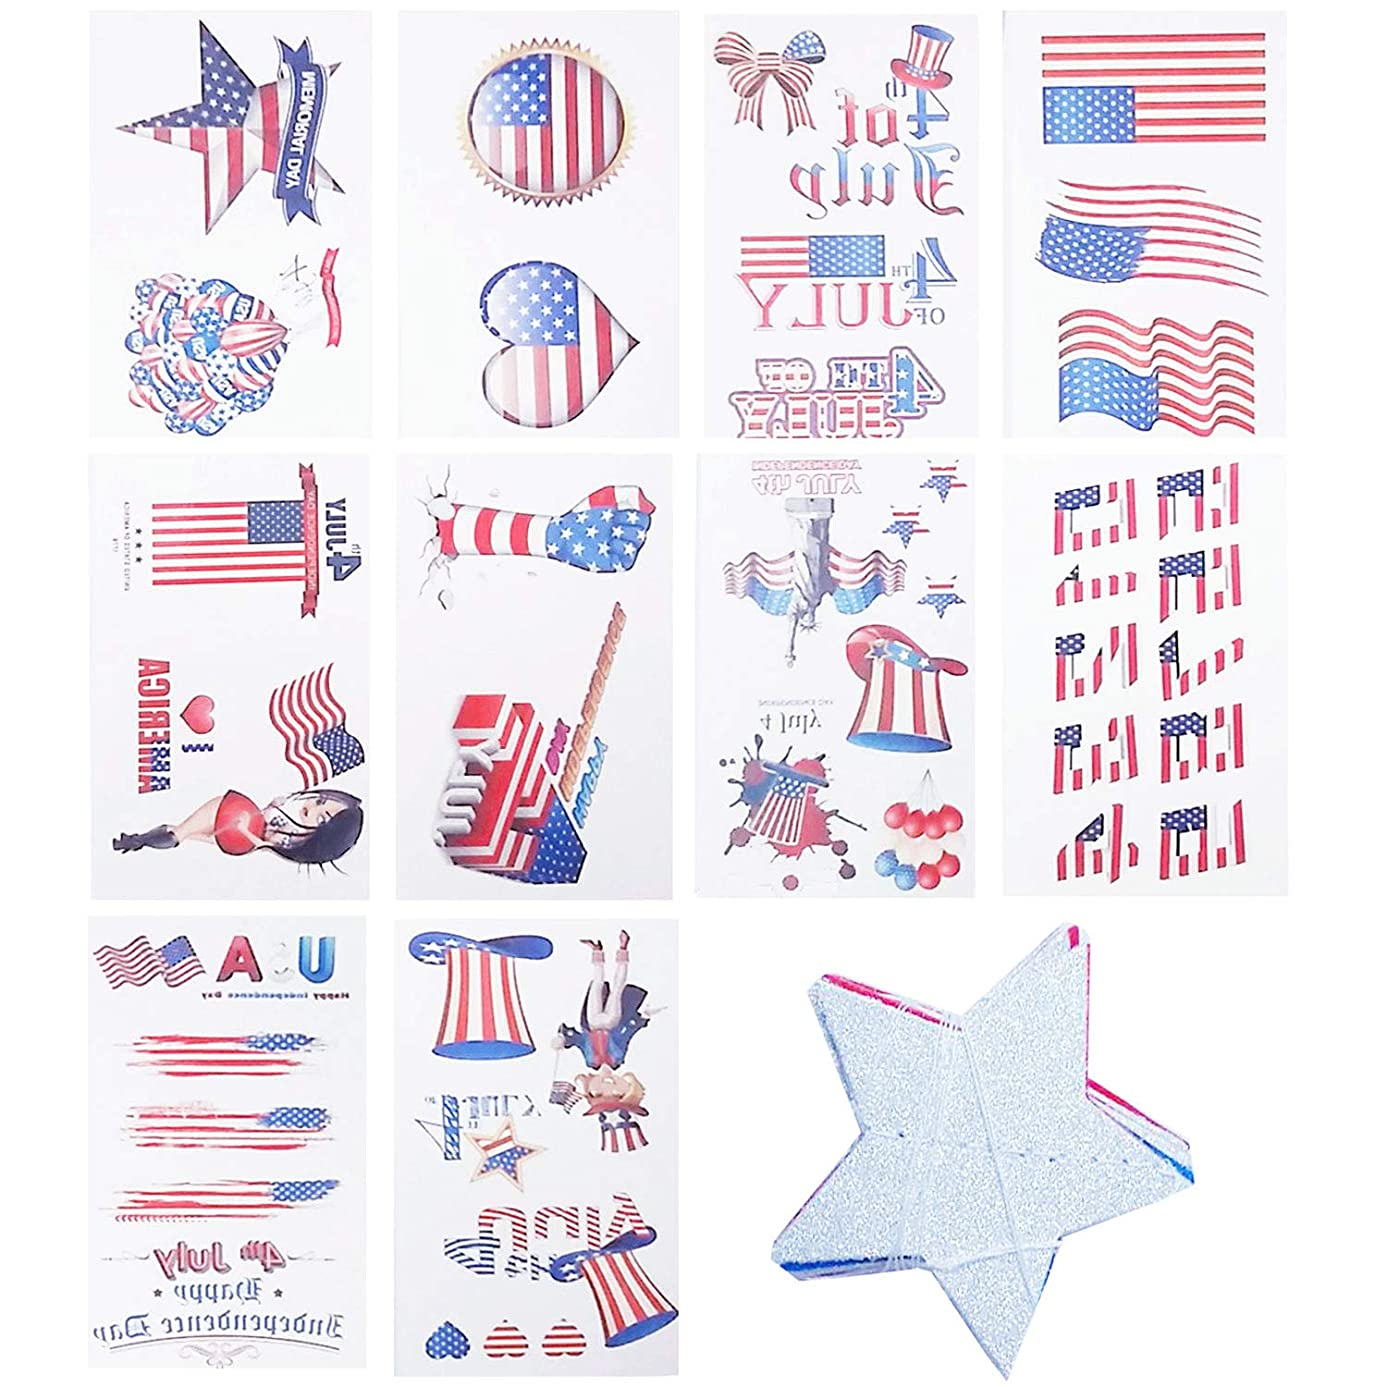 Patriotic Party Decorations Supplies for Independence Day, DaNaRaa Fourth July Patriotic Star Streamers and Tattoo Stickers for Celebration Holiday